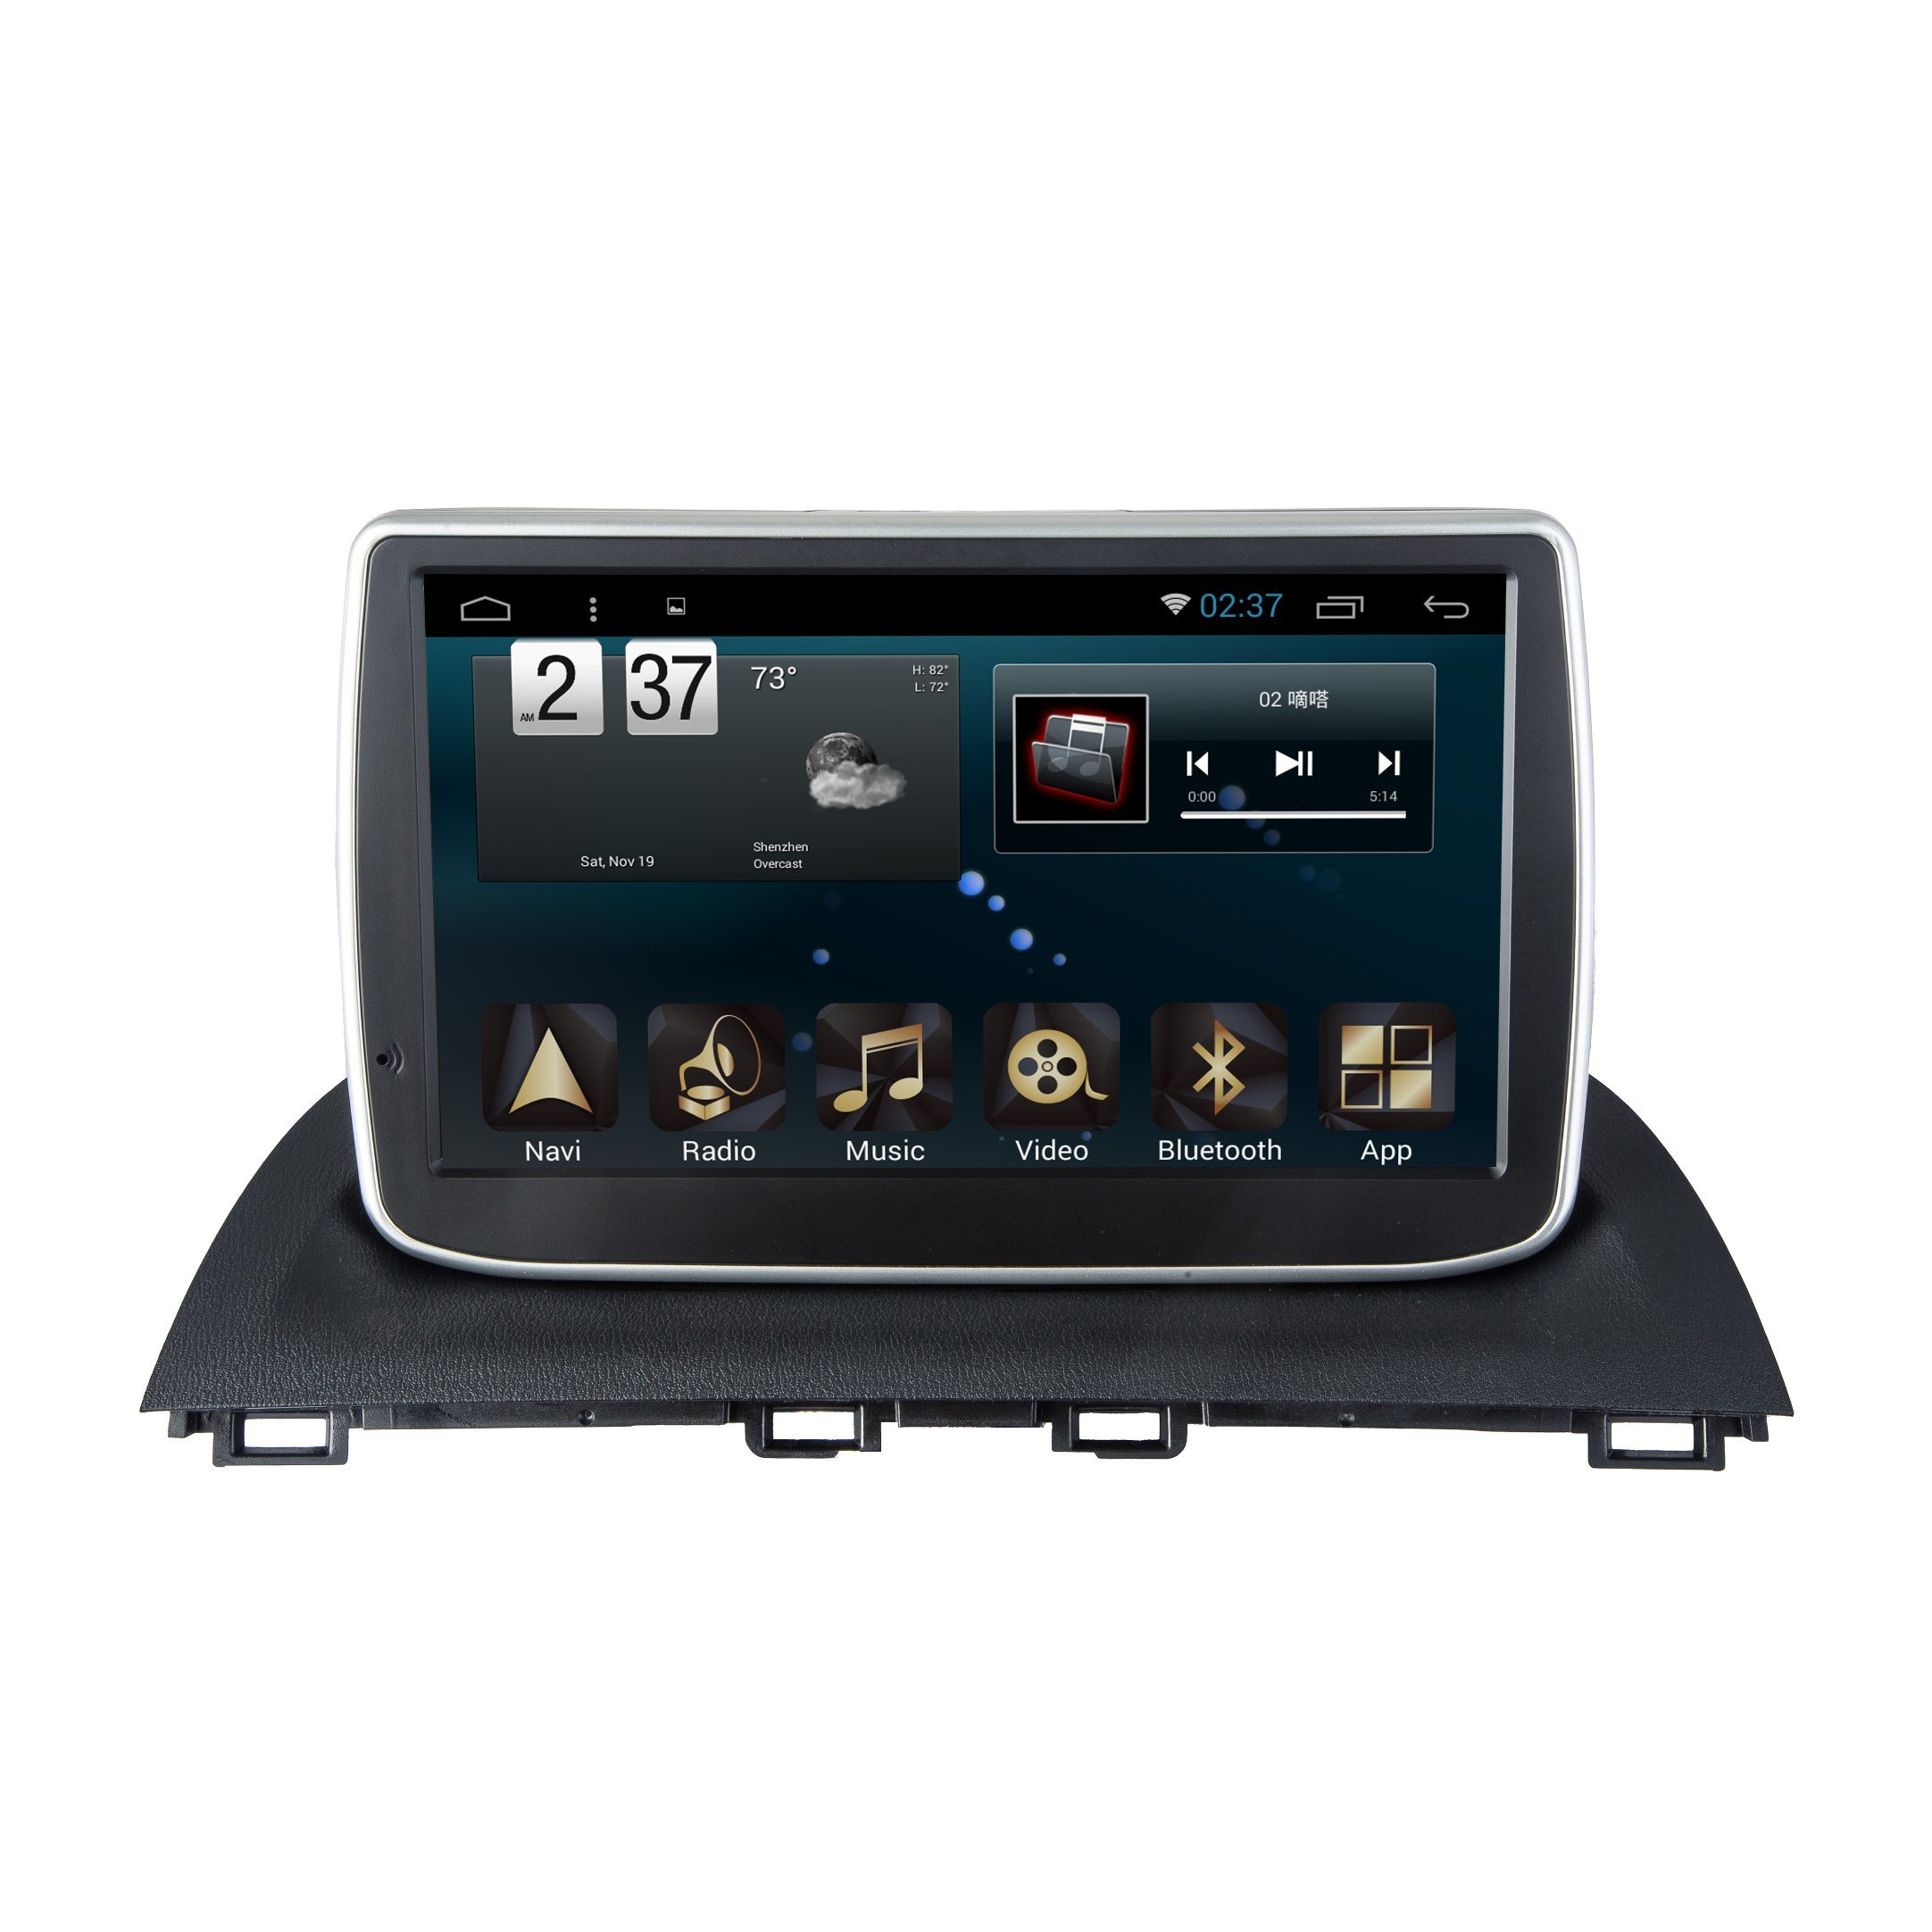 New Ui Android System Car GPS for Mazda 3 Axela with Navigation Stereo